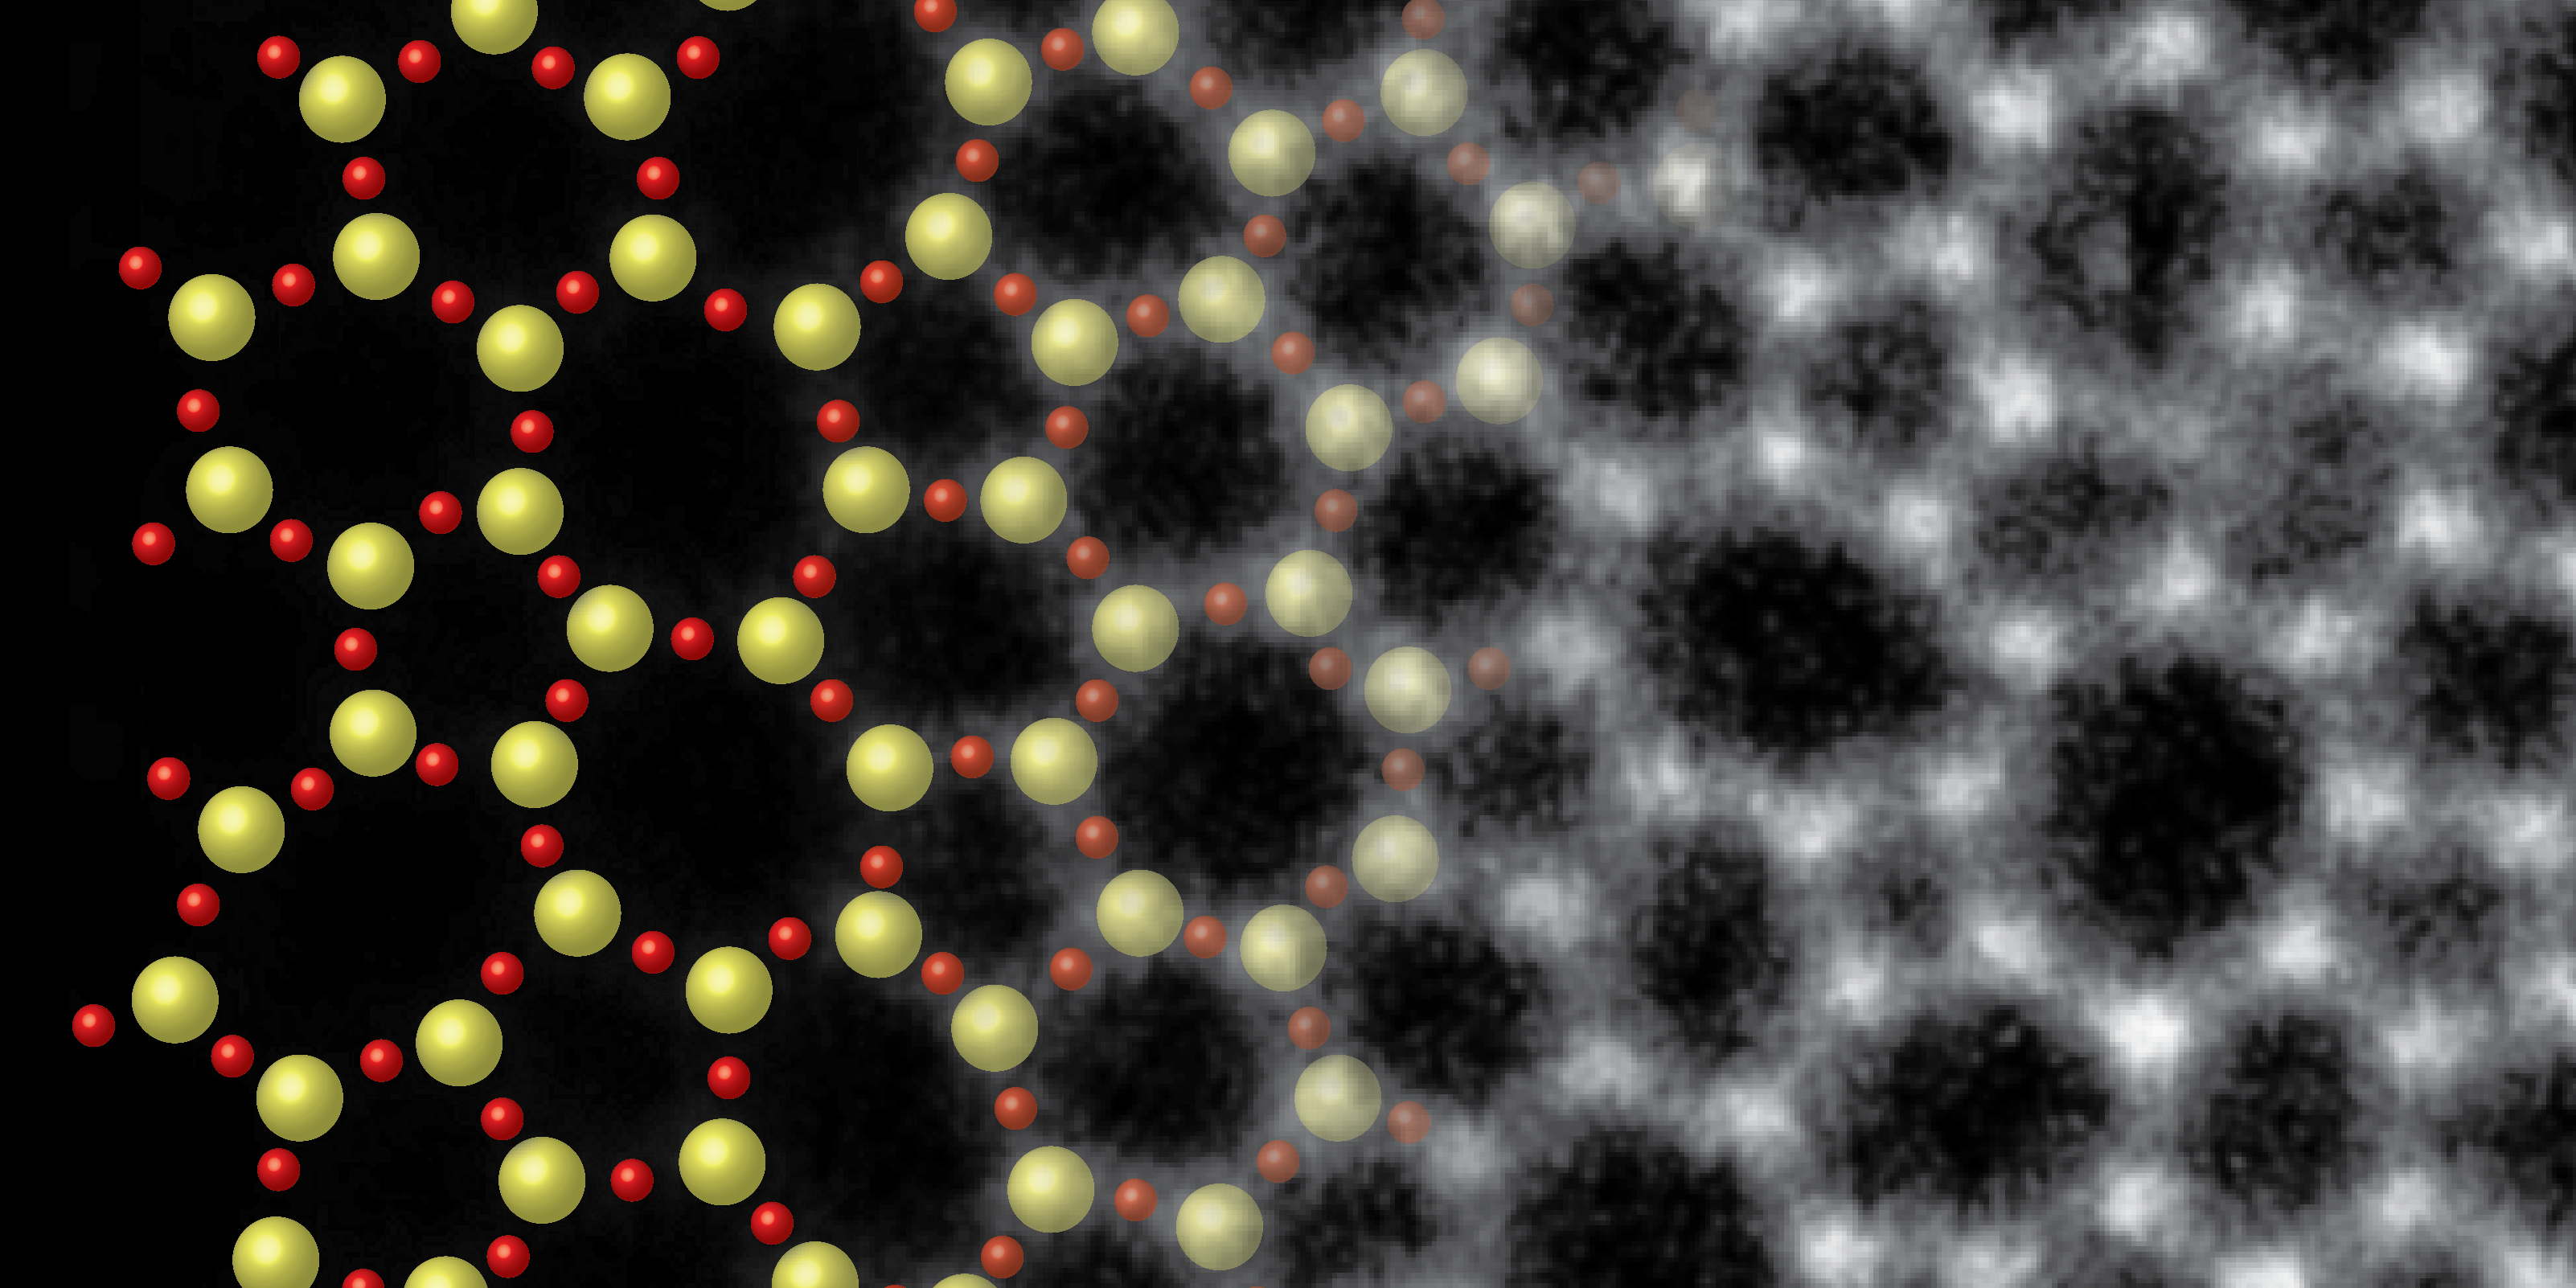 Imaging the atomic structure of silica glass